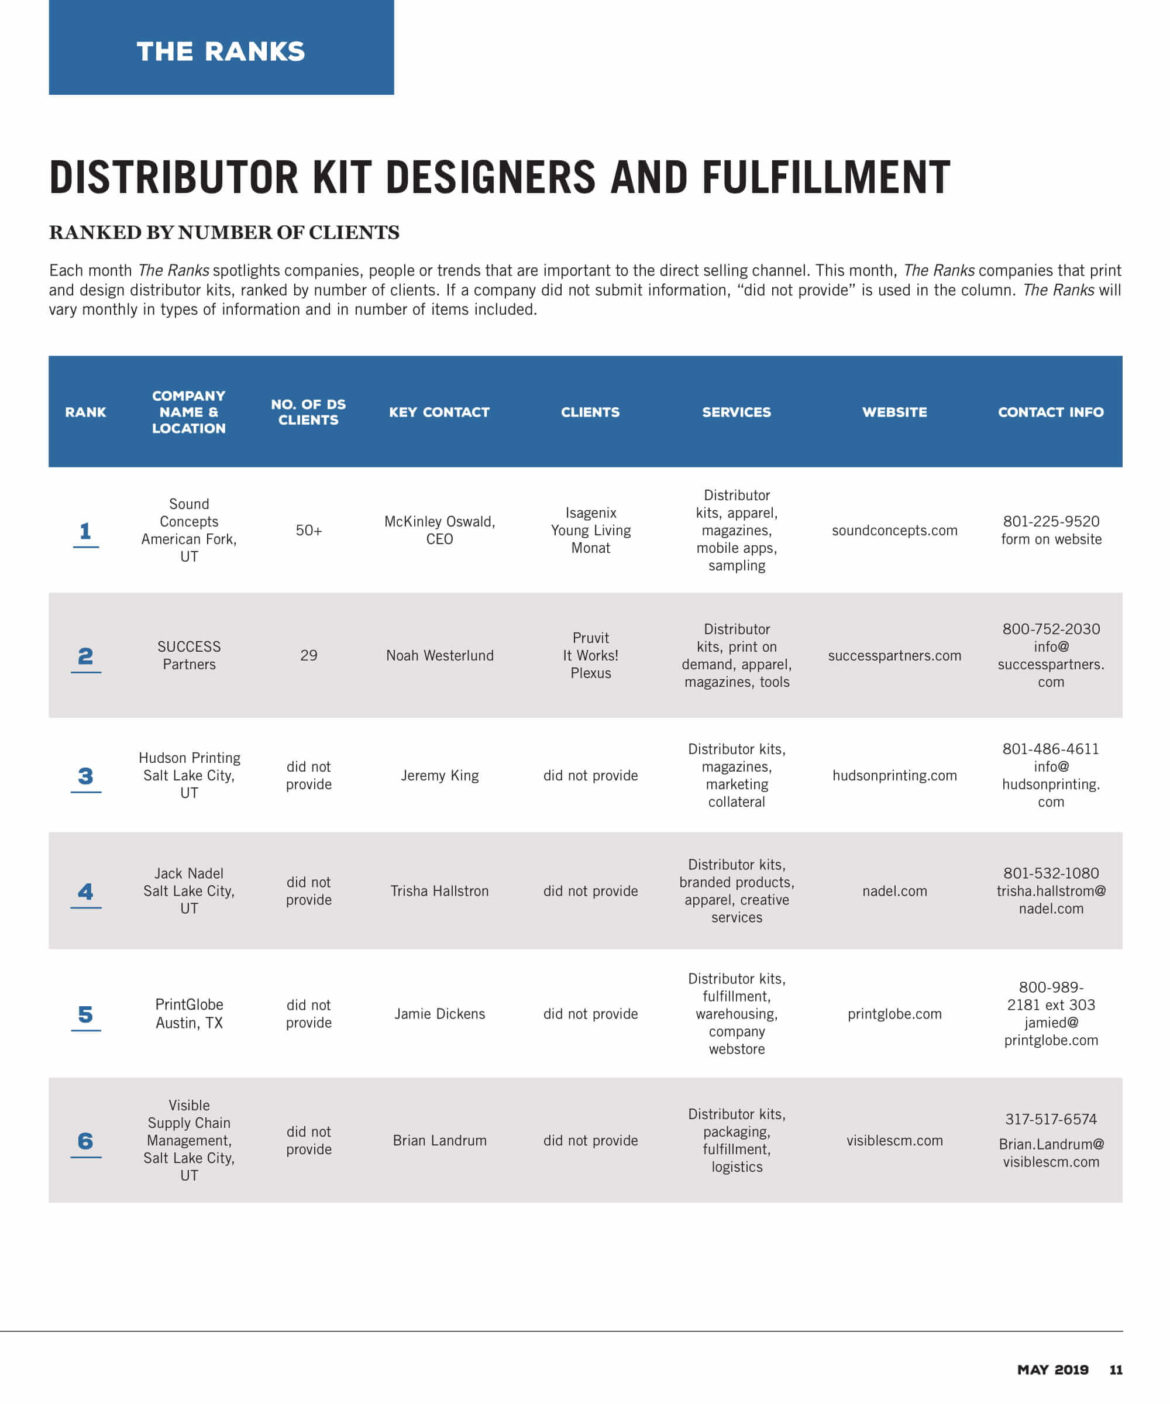 Distributor Kit Designers and Fulfillment